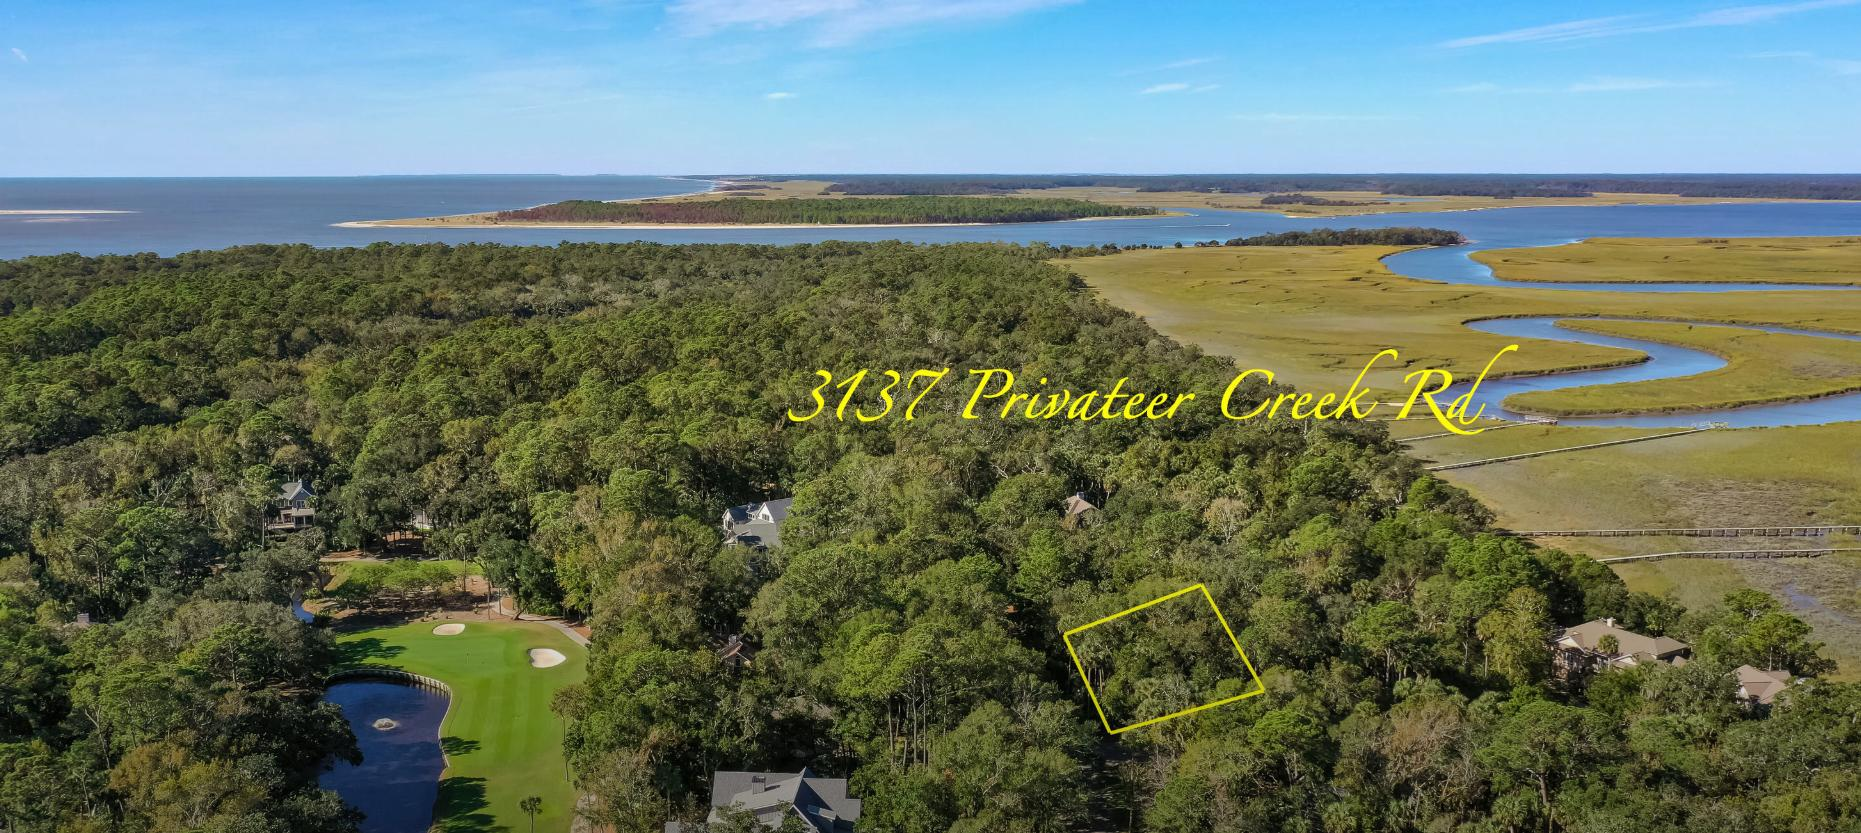 Seabrook Island Homes For Sale - 3137 Privateer Creek, Seabrook Island, SC - 21